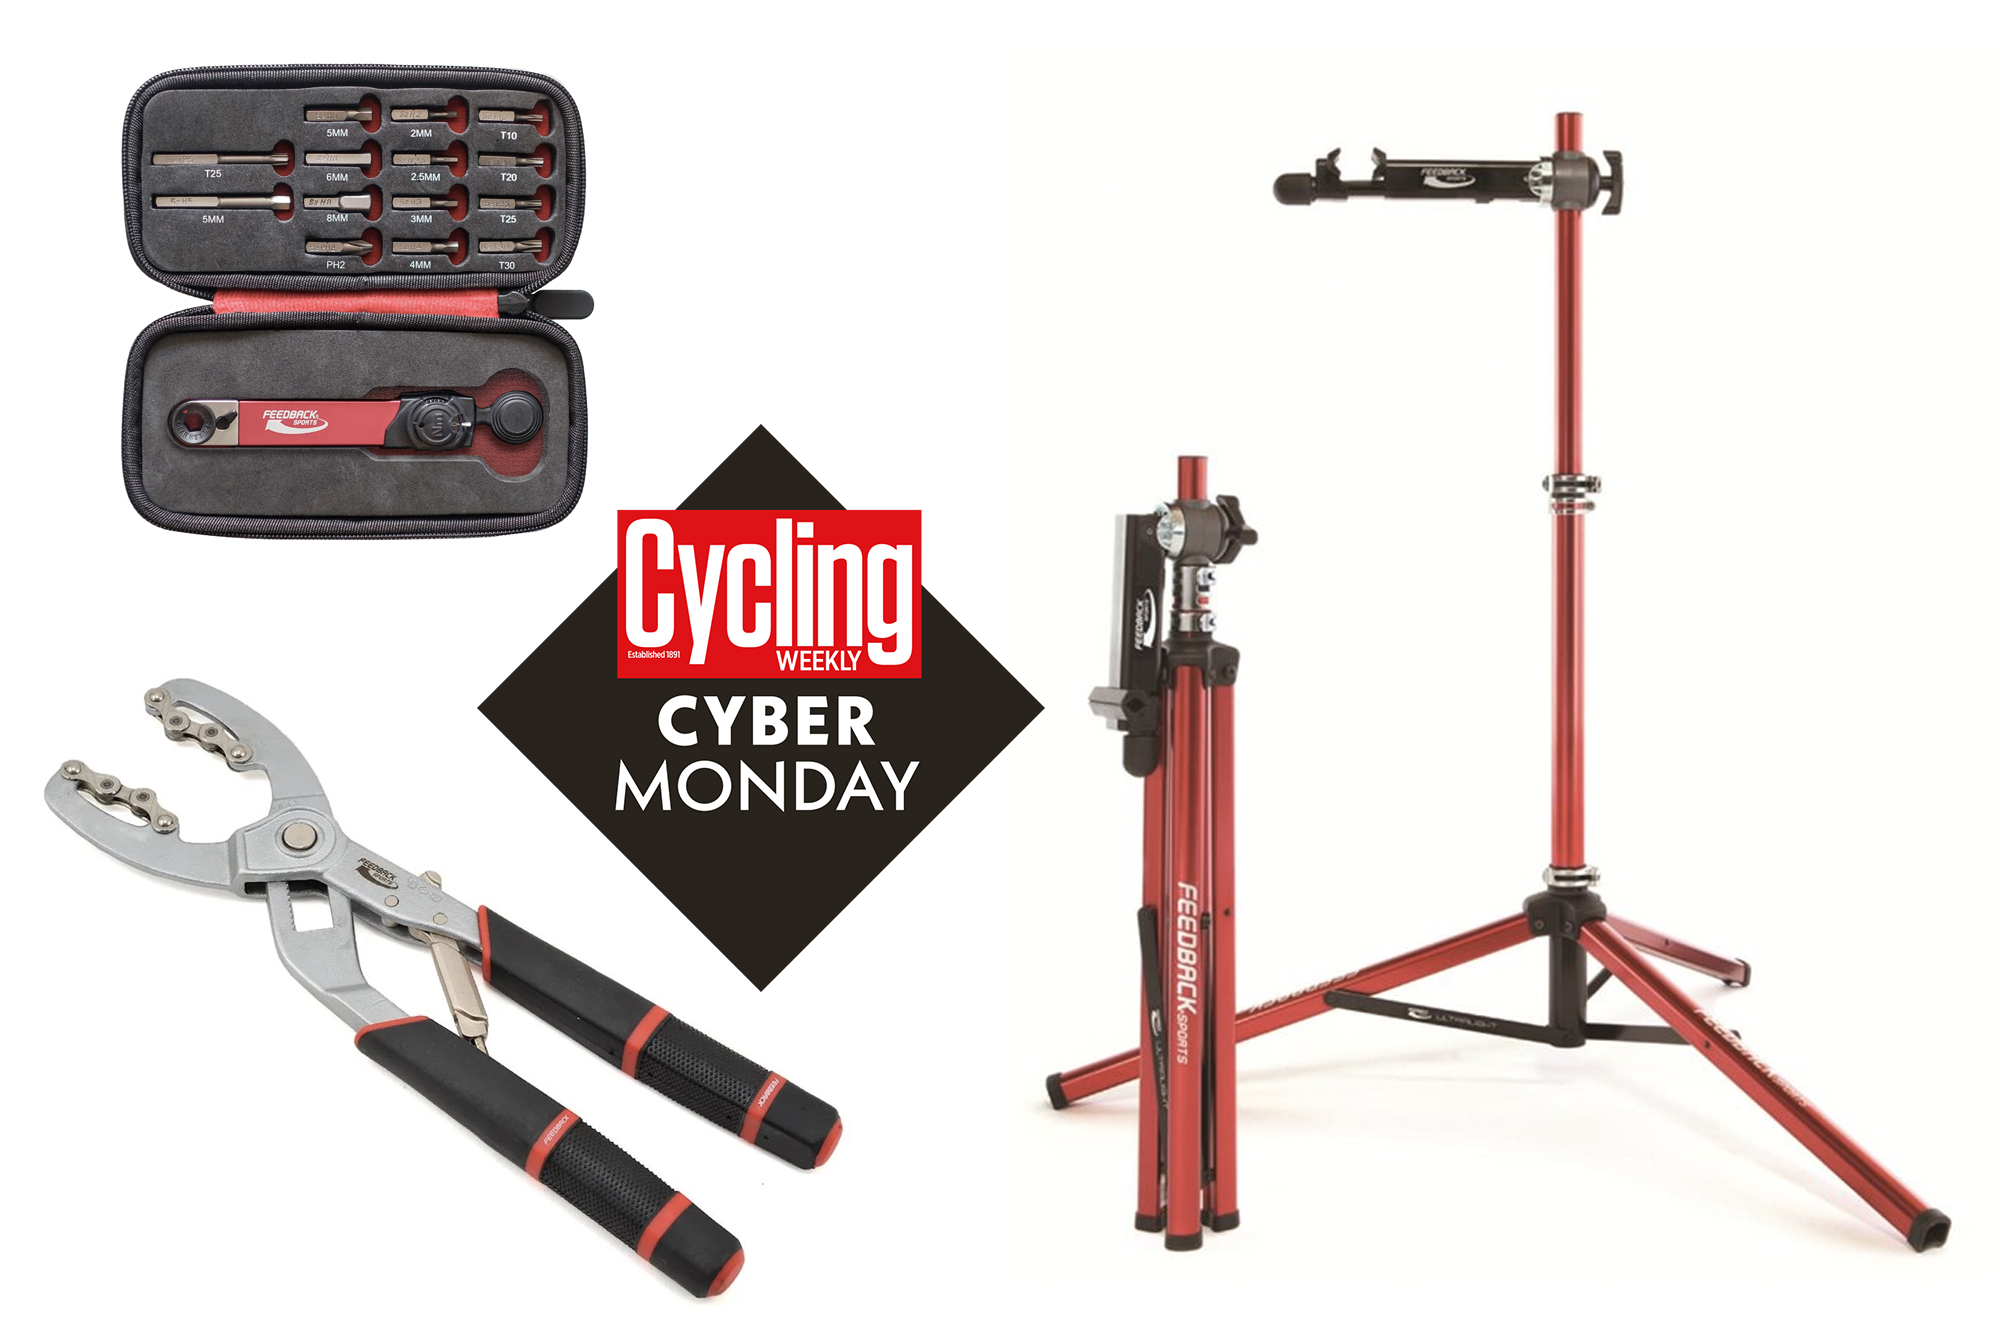 Cyber Monday deals: Save 20% on Feedback Sports tools (USA) - Cycling Weekly